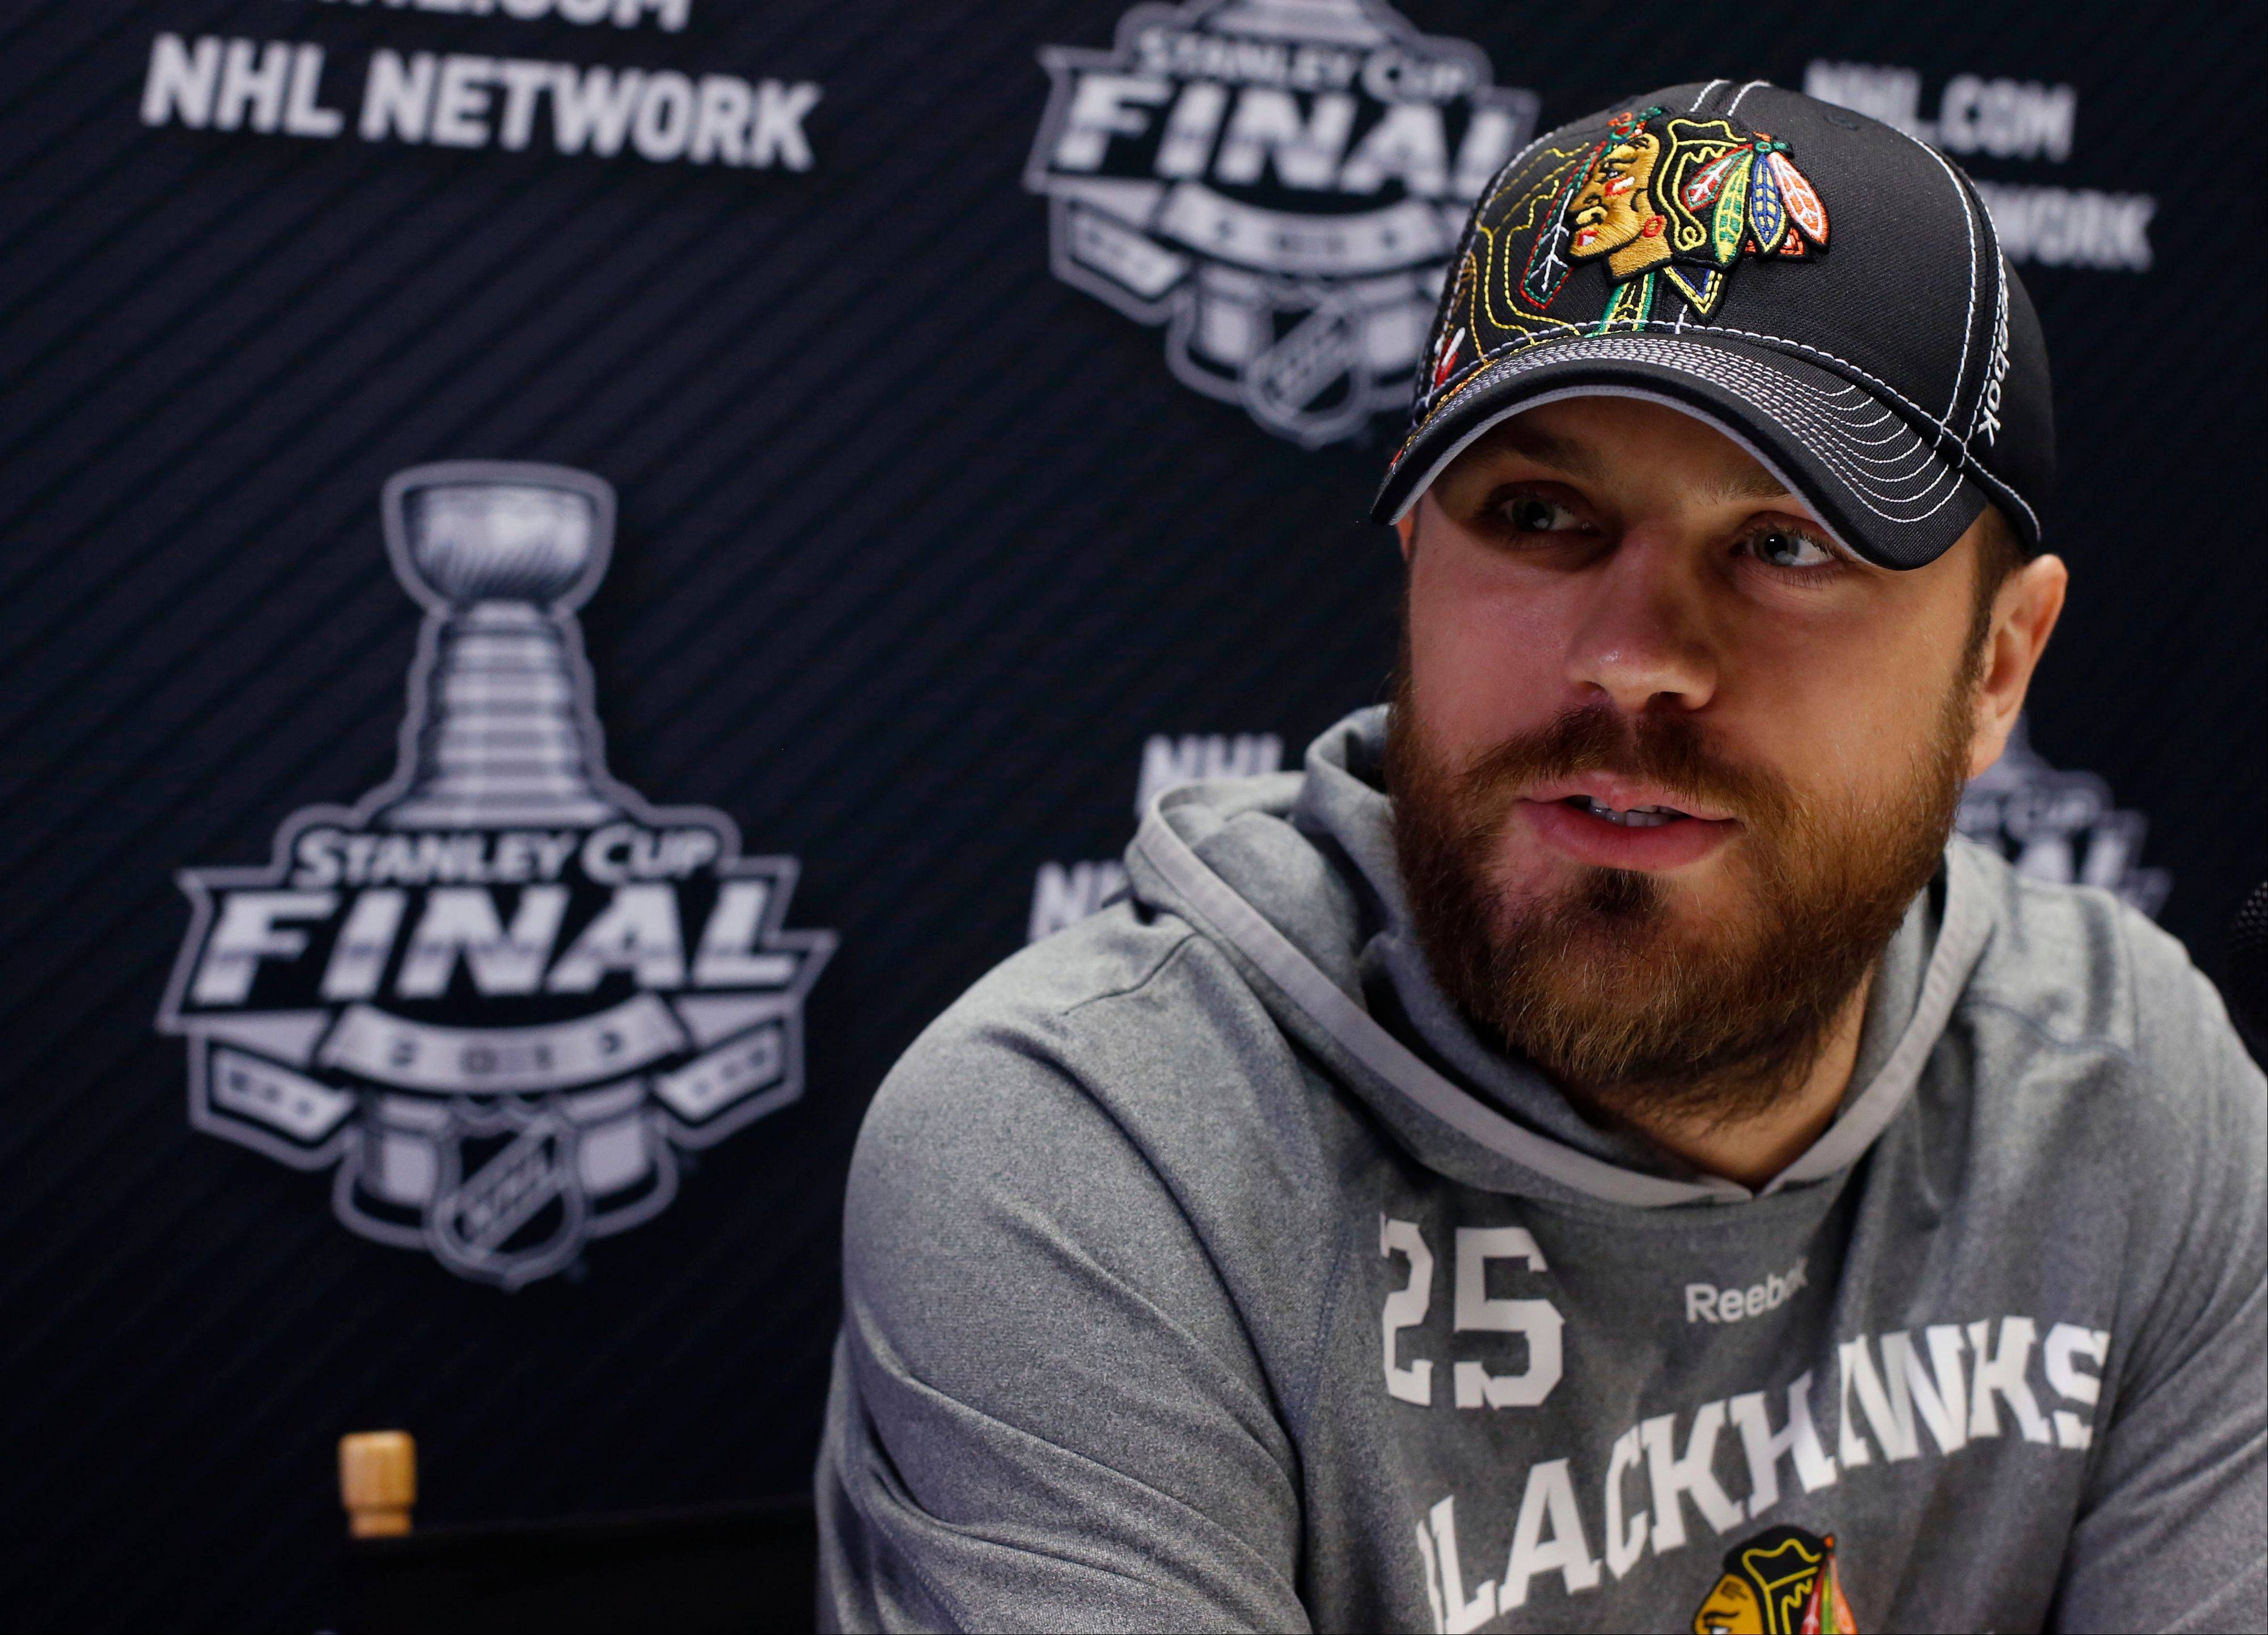 Blackhawks forward Viktor Stalberg was back in the lineup Monday night after sitting out the first two games of the Stanley Cup Final.